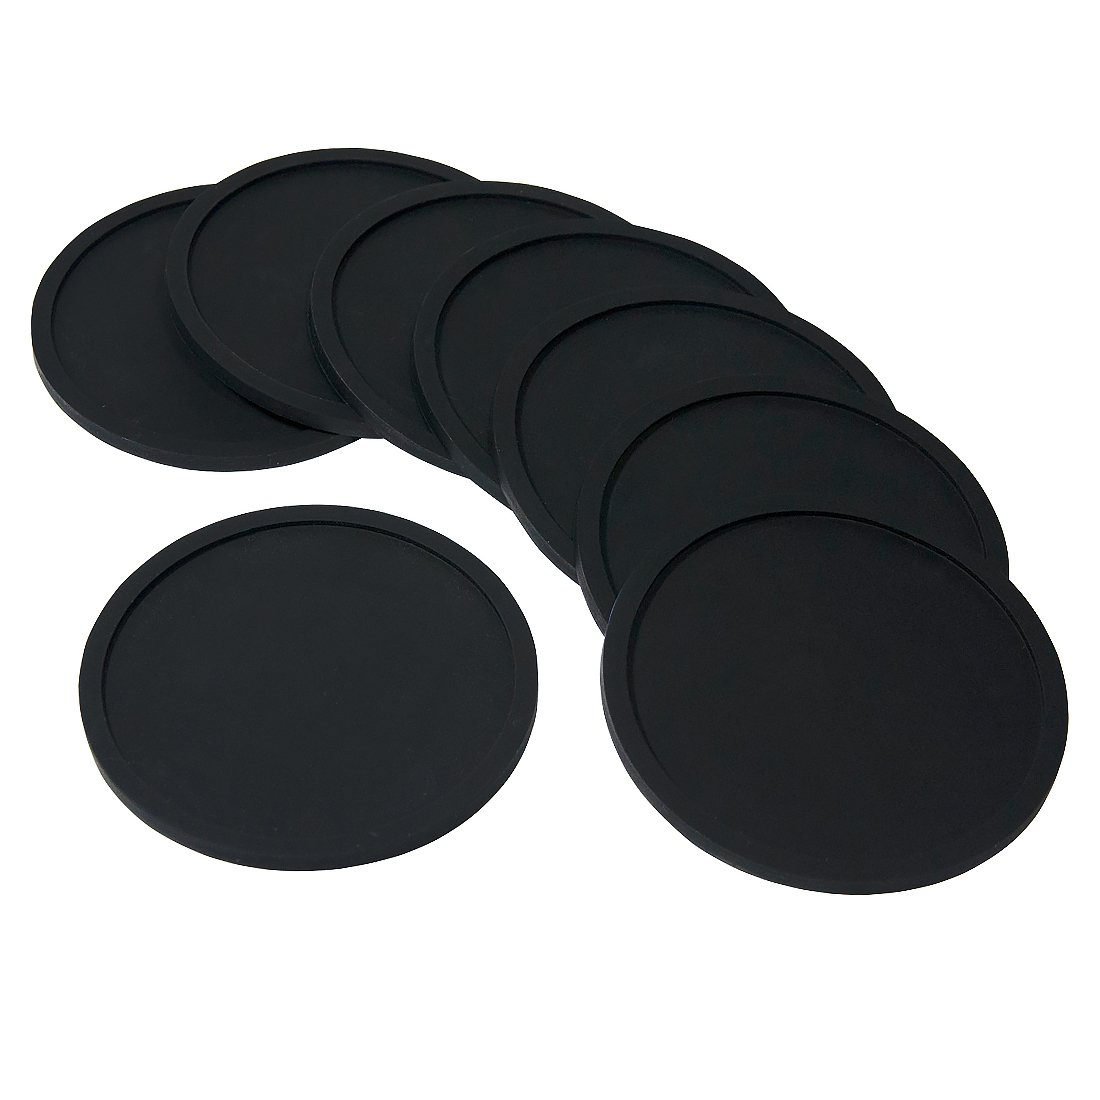 Drink Coasters Amazon Barmix Rubber Silicone Drink Coasters Amazon Lightning